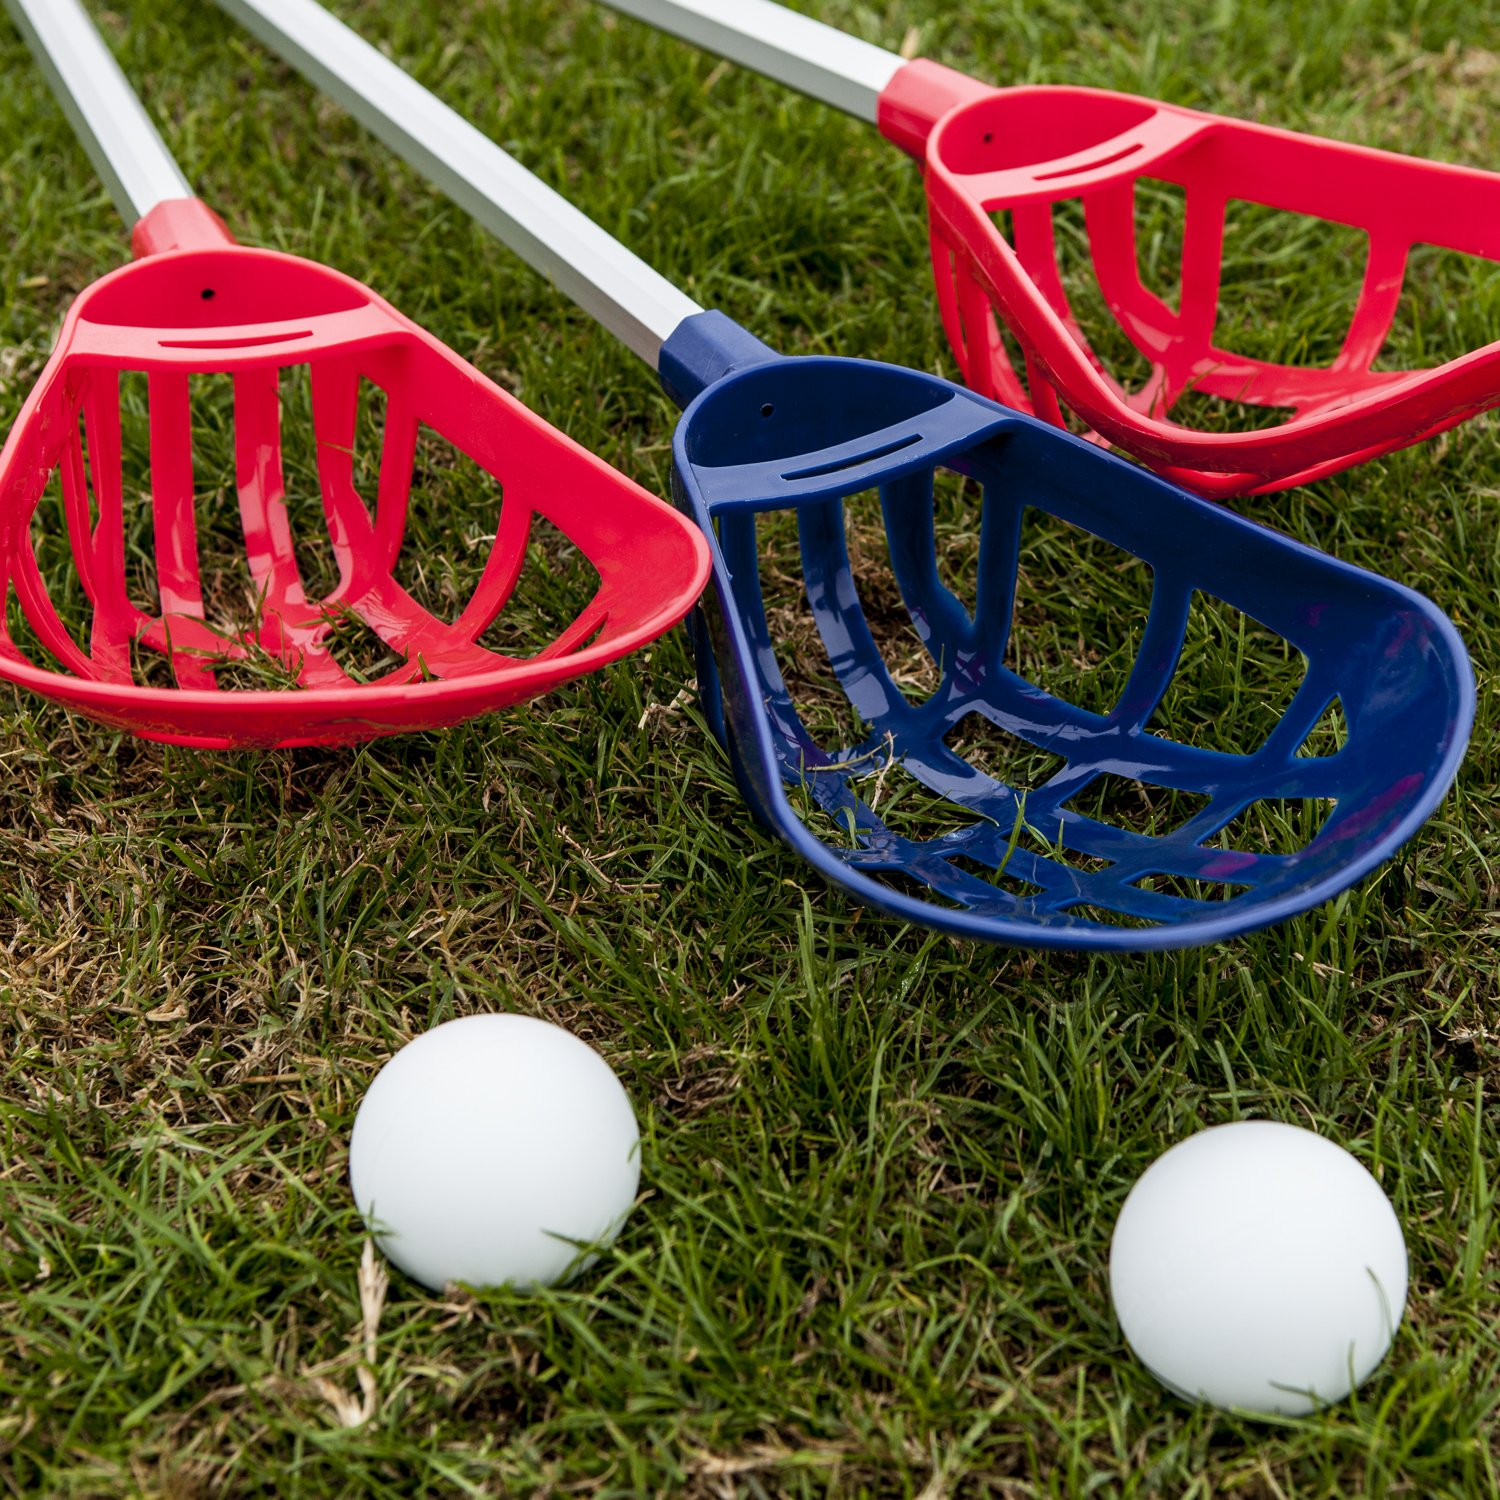 Champion Sports Soft Lacrosse Set: Training Equipment for Boys, Girls, Kids, Youth and Amateur Athletes - 12 Aluminum Sticks and 6 Vinyl Balls for Indoor Outdoor Use by Champion Sports (Image #7)